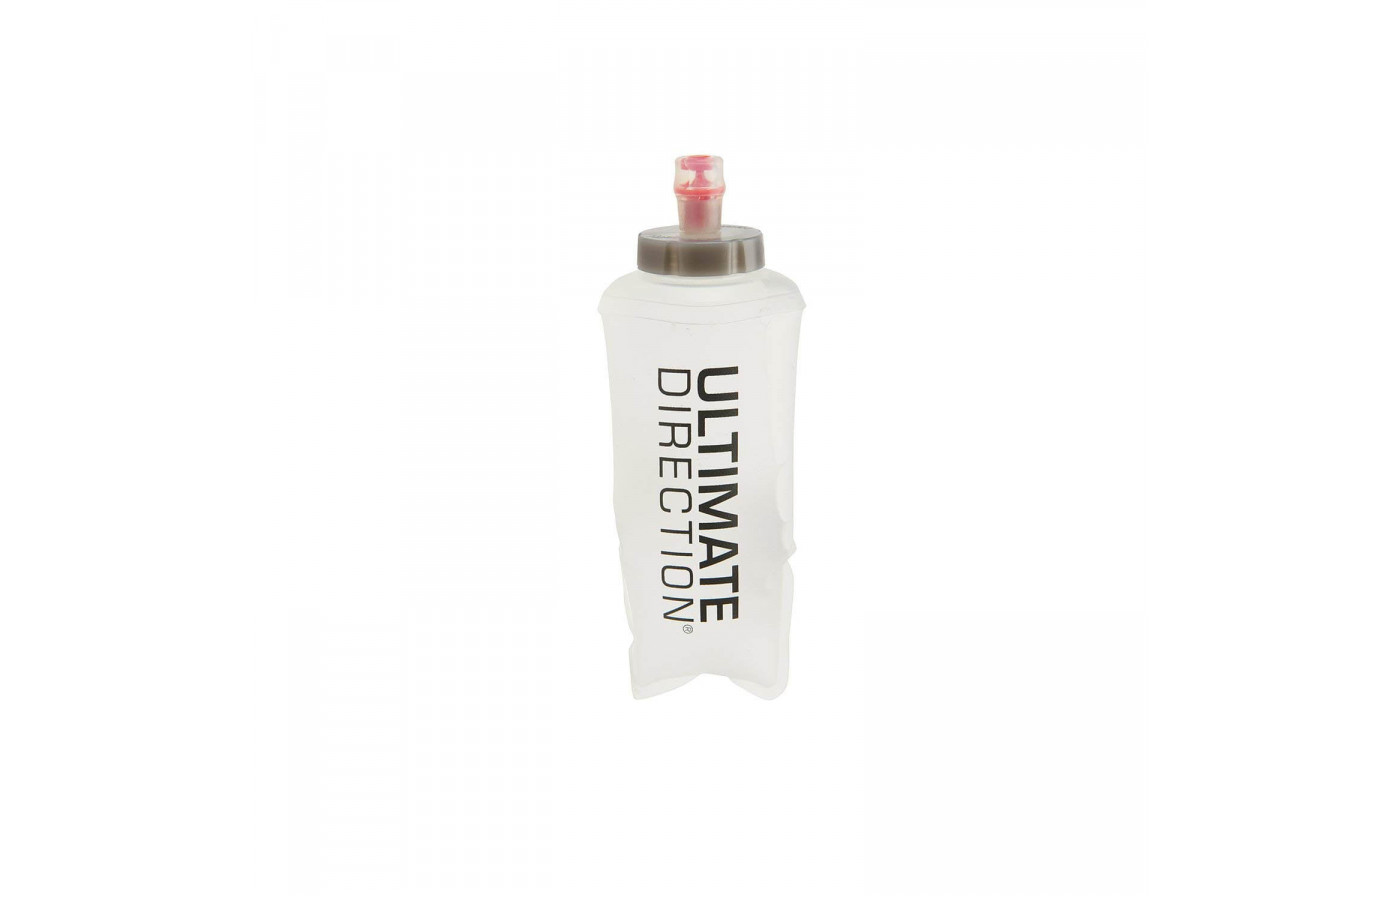 The Ultimate Direction PB Adventure Vest 3.0 comes with one 500mL soft flask